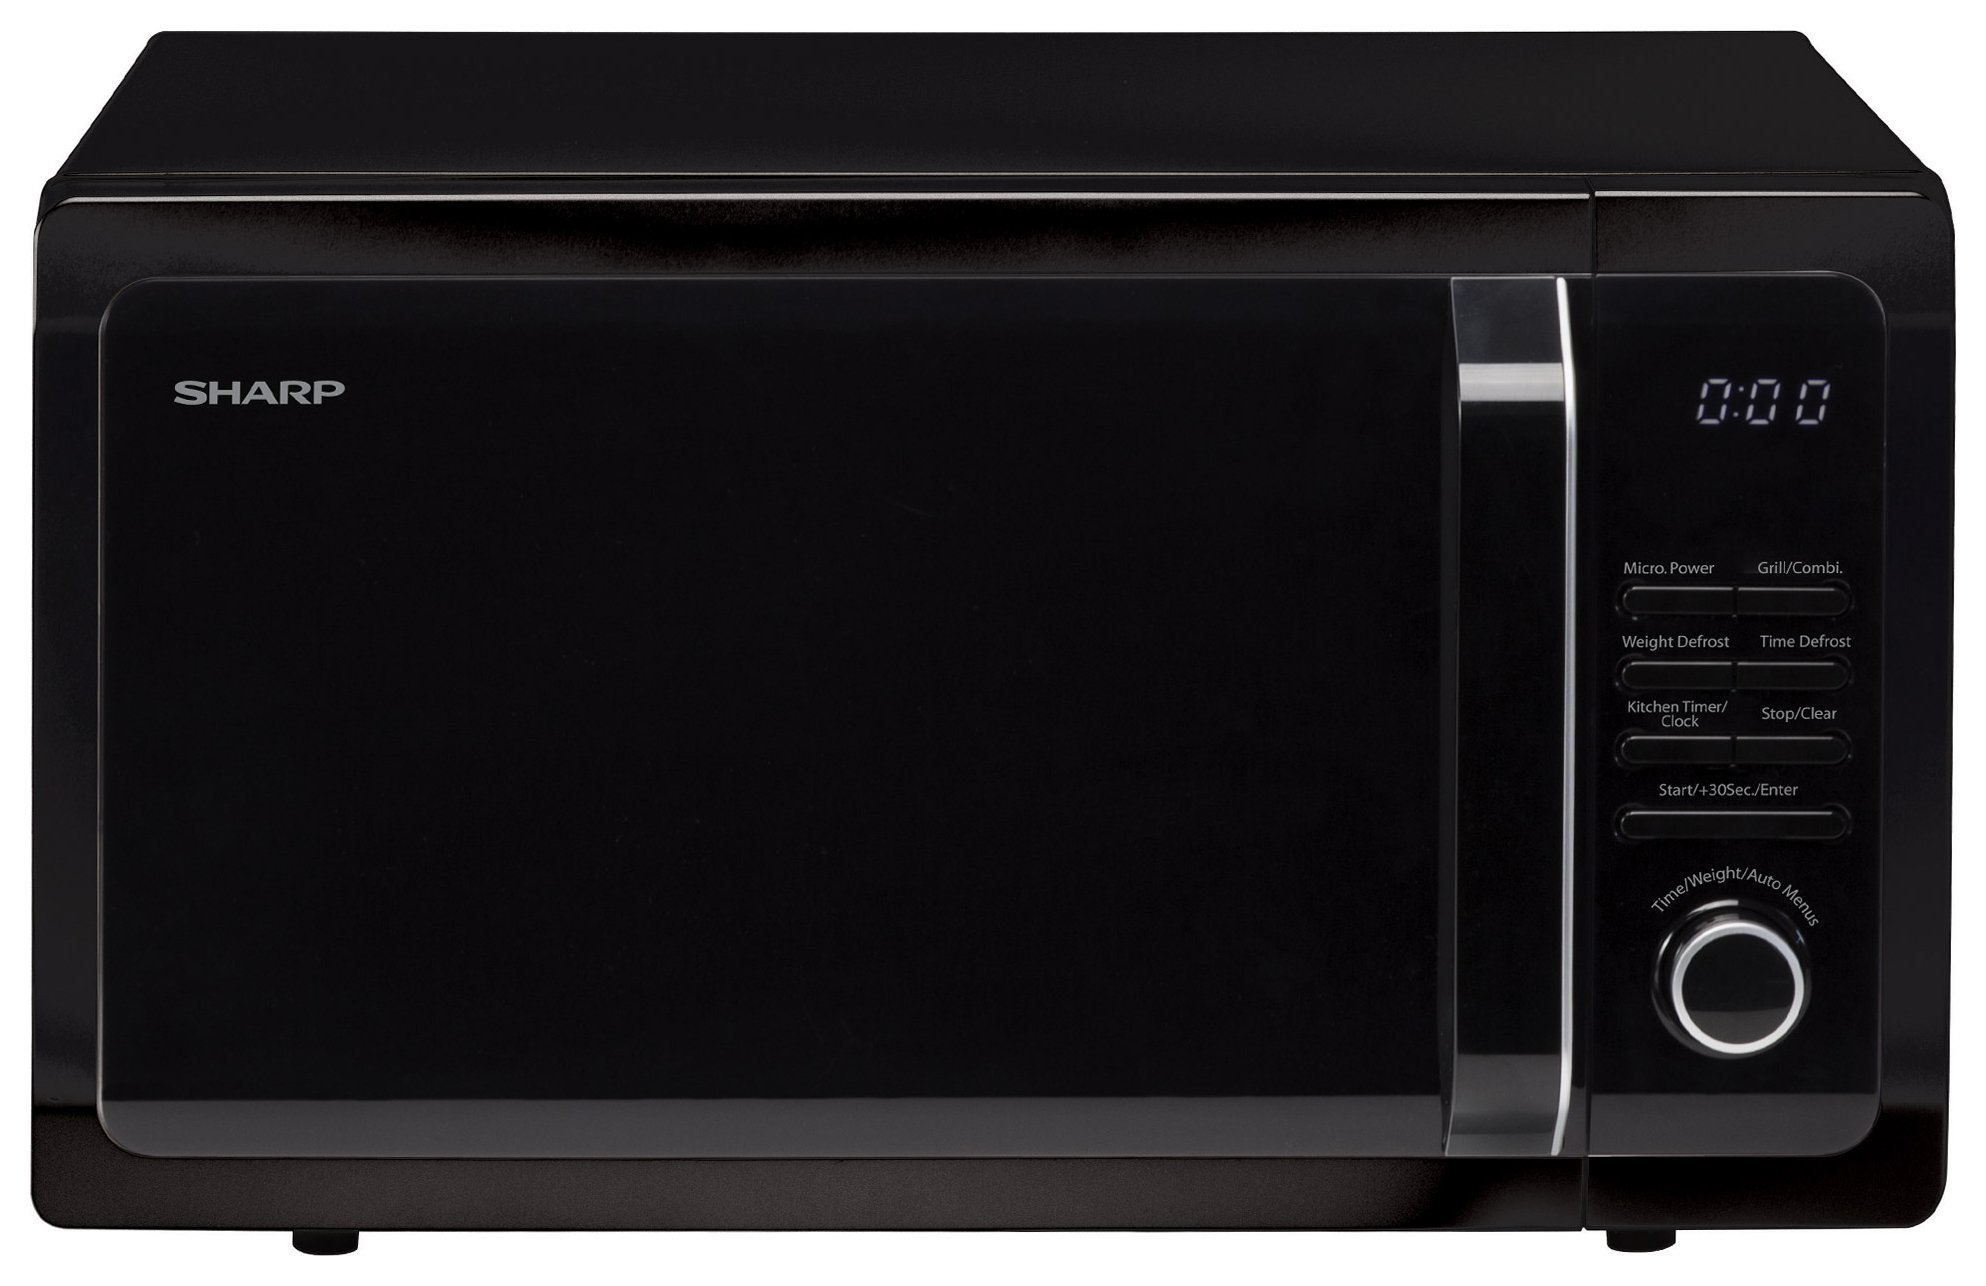 Sharp - R764KM 900W Microwave with Grill - Black